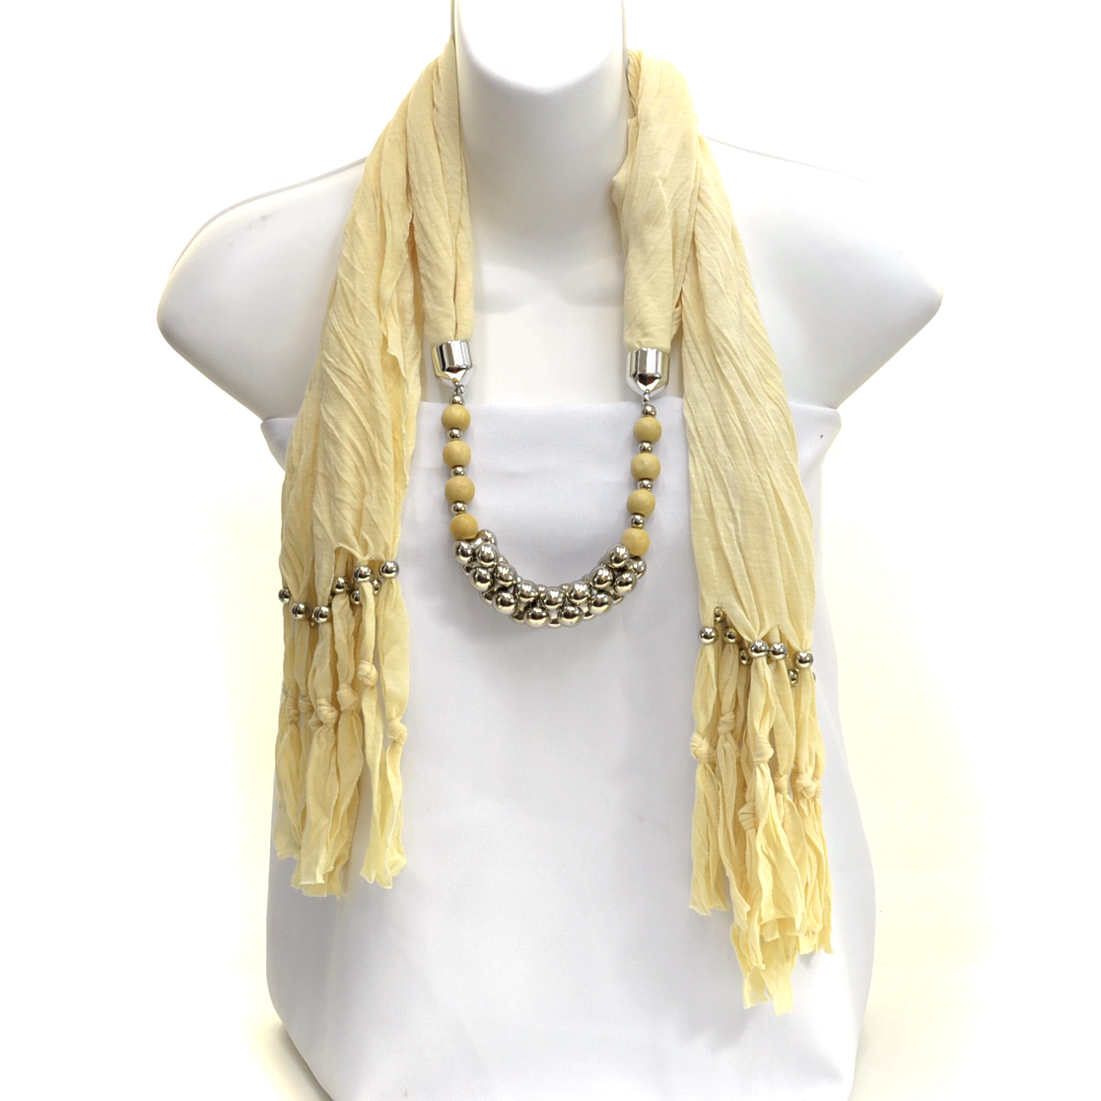 Interlocking Silver Tone and Wood Texture Beads with Beaded Fringe